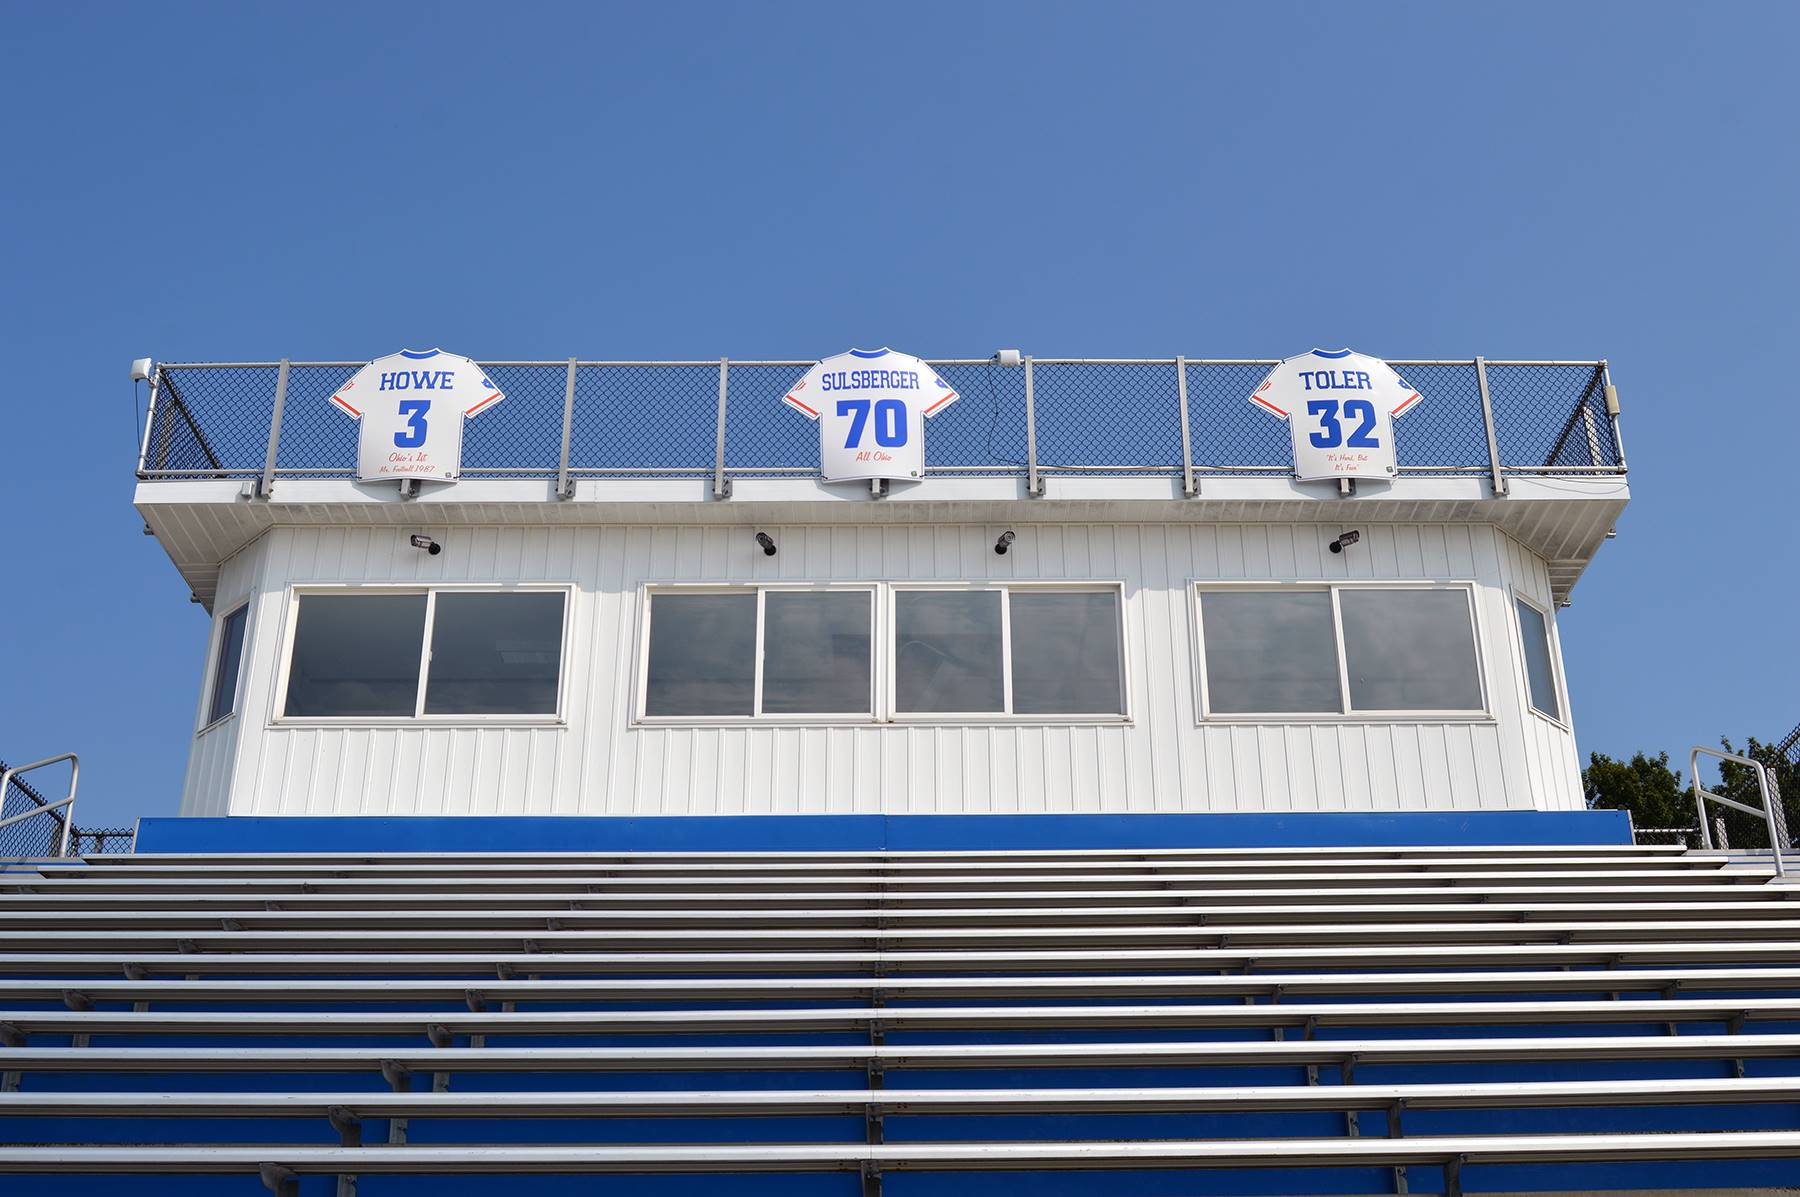 The Grant & Valerie Hickman Press Box on the visitors stands, with three signs representing the reti